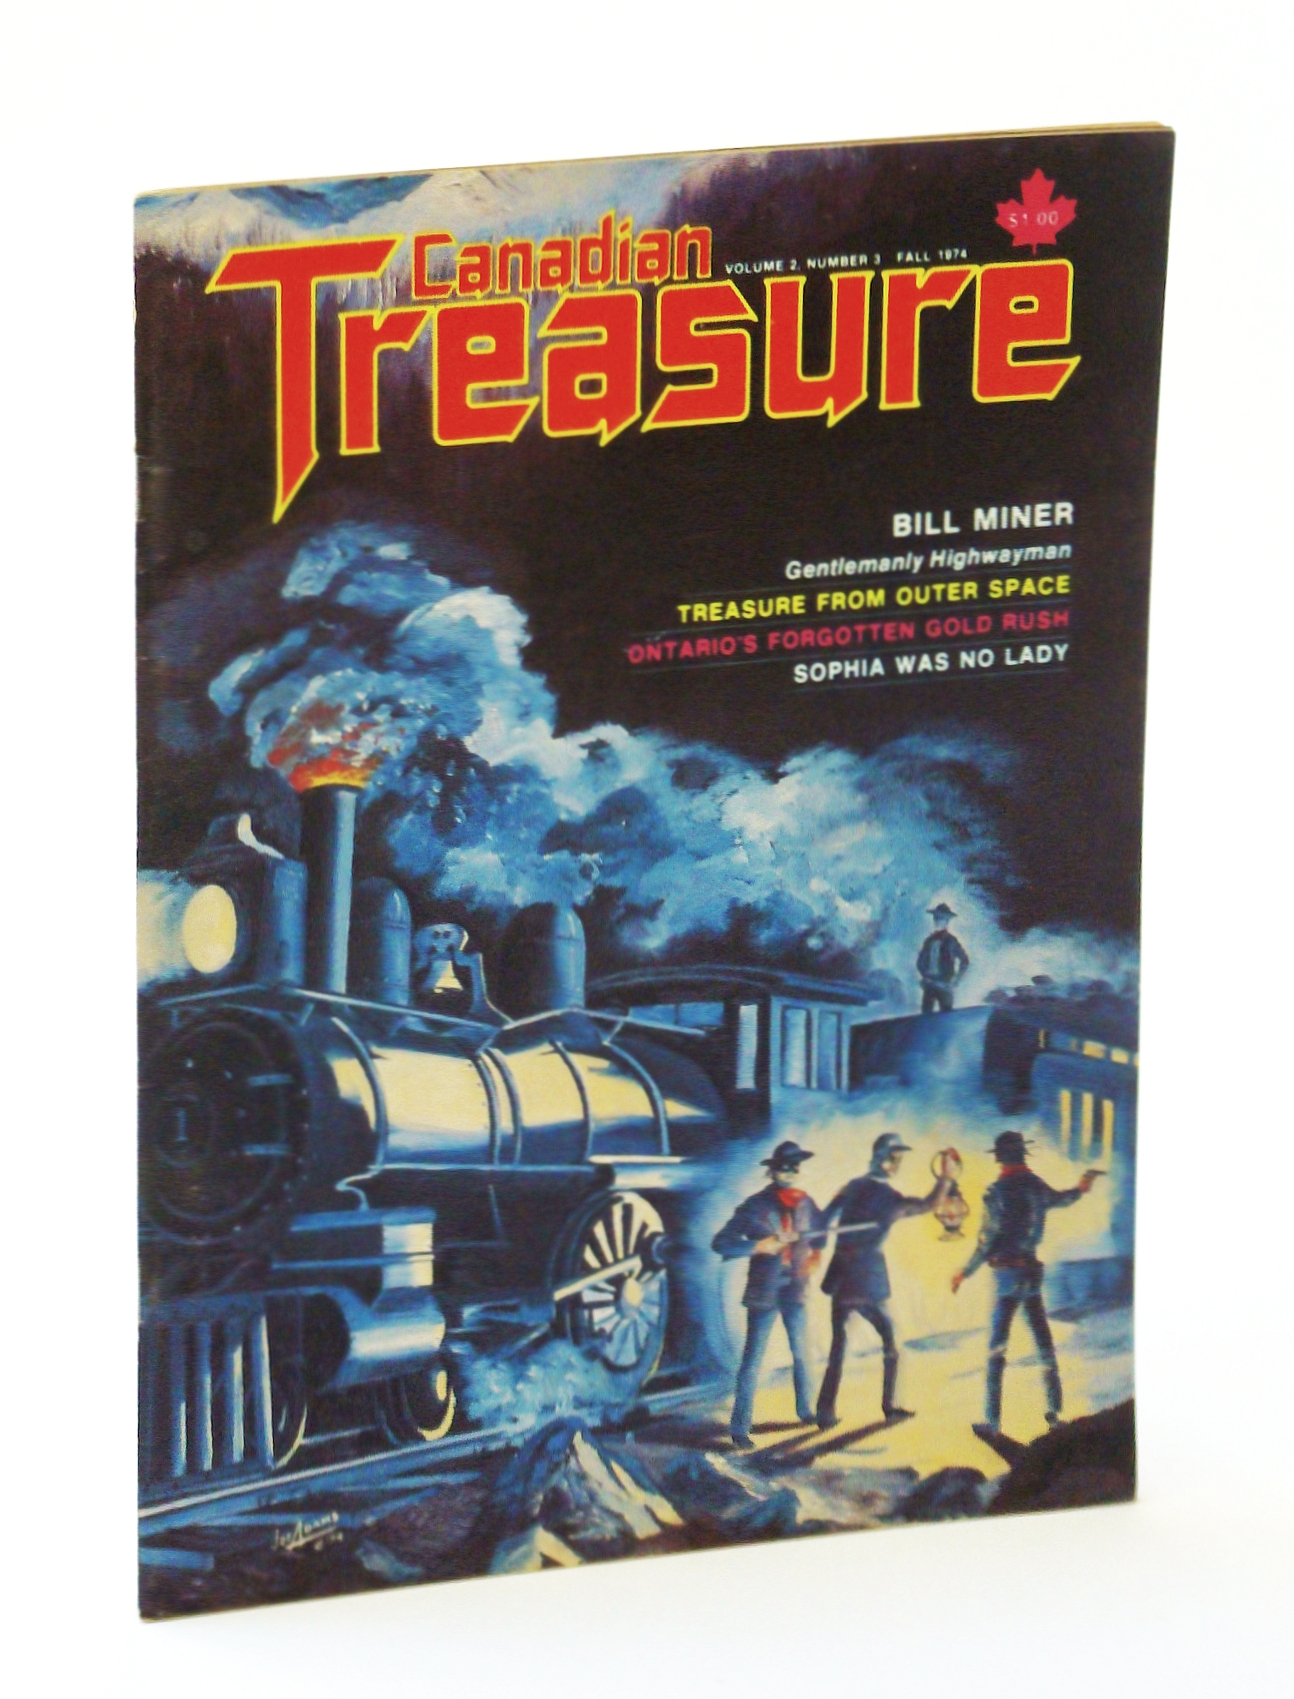 Image for Canadian Treasure Magazine - True Stories on Lost, Sunken and Buried Treasure - Volume 2, Number 3 (Collector's No. 6), Fall 1974